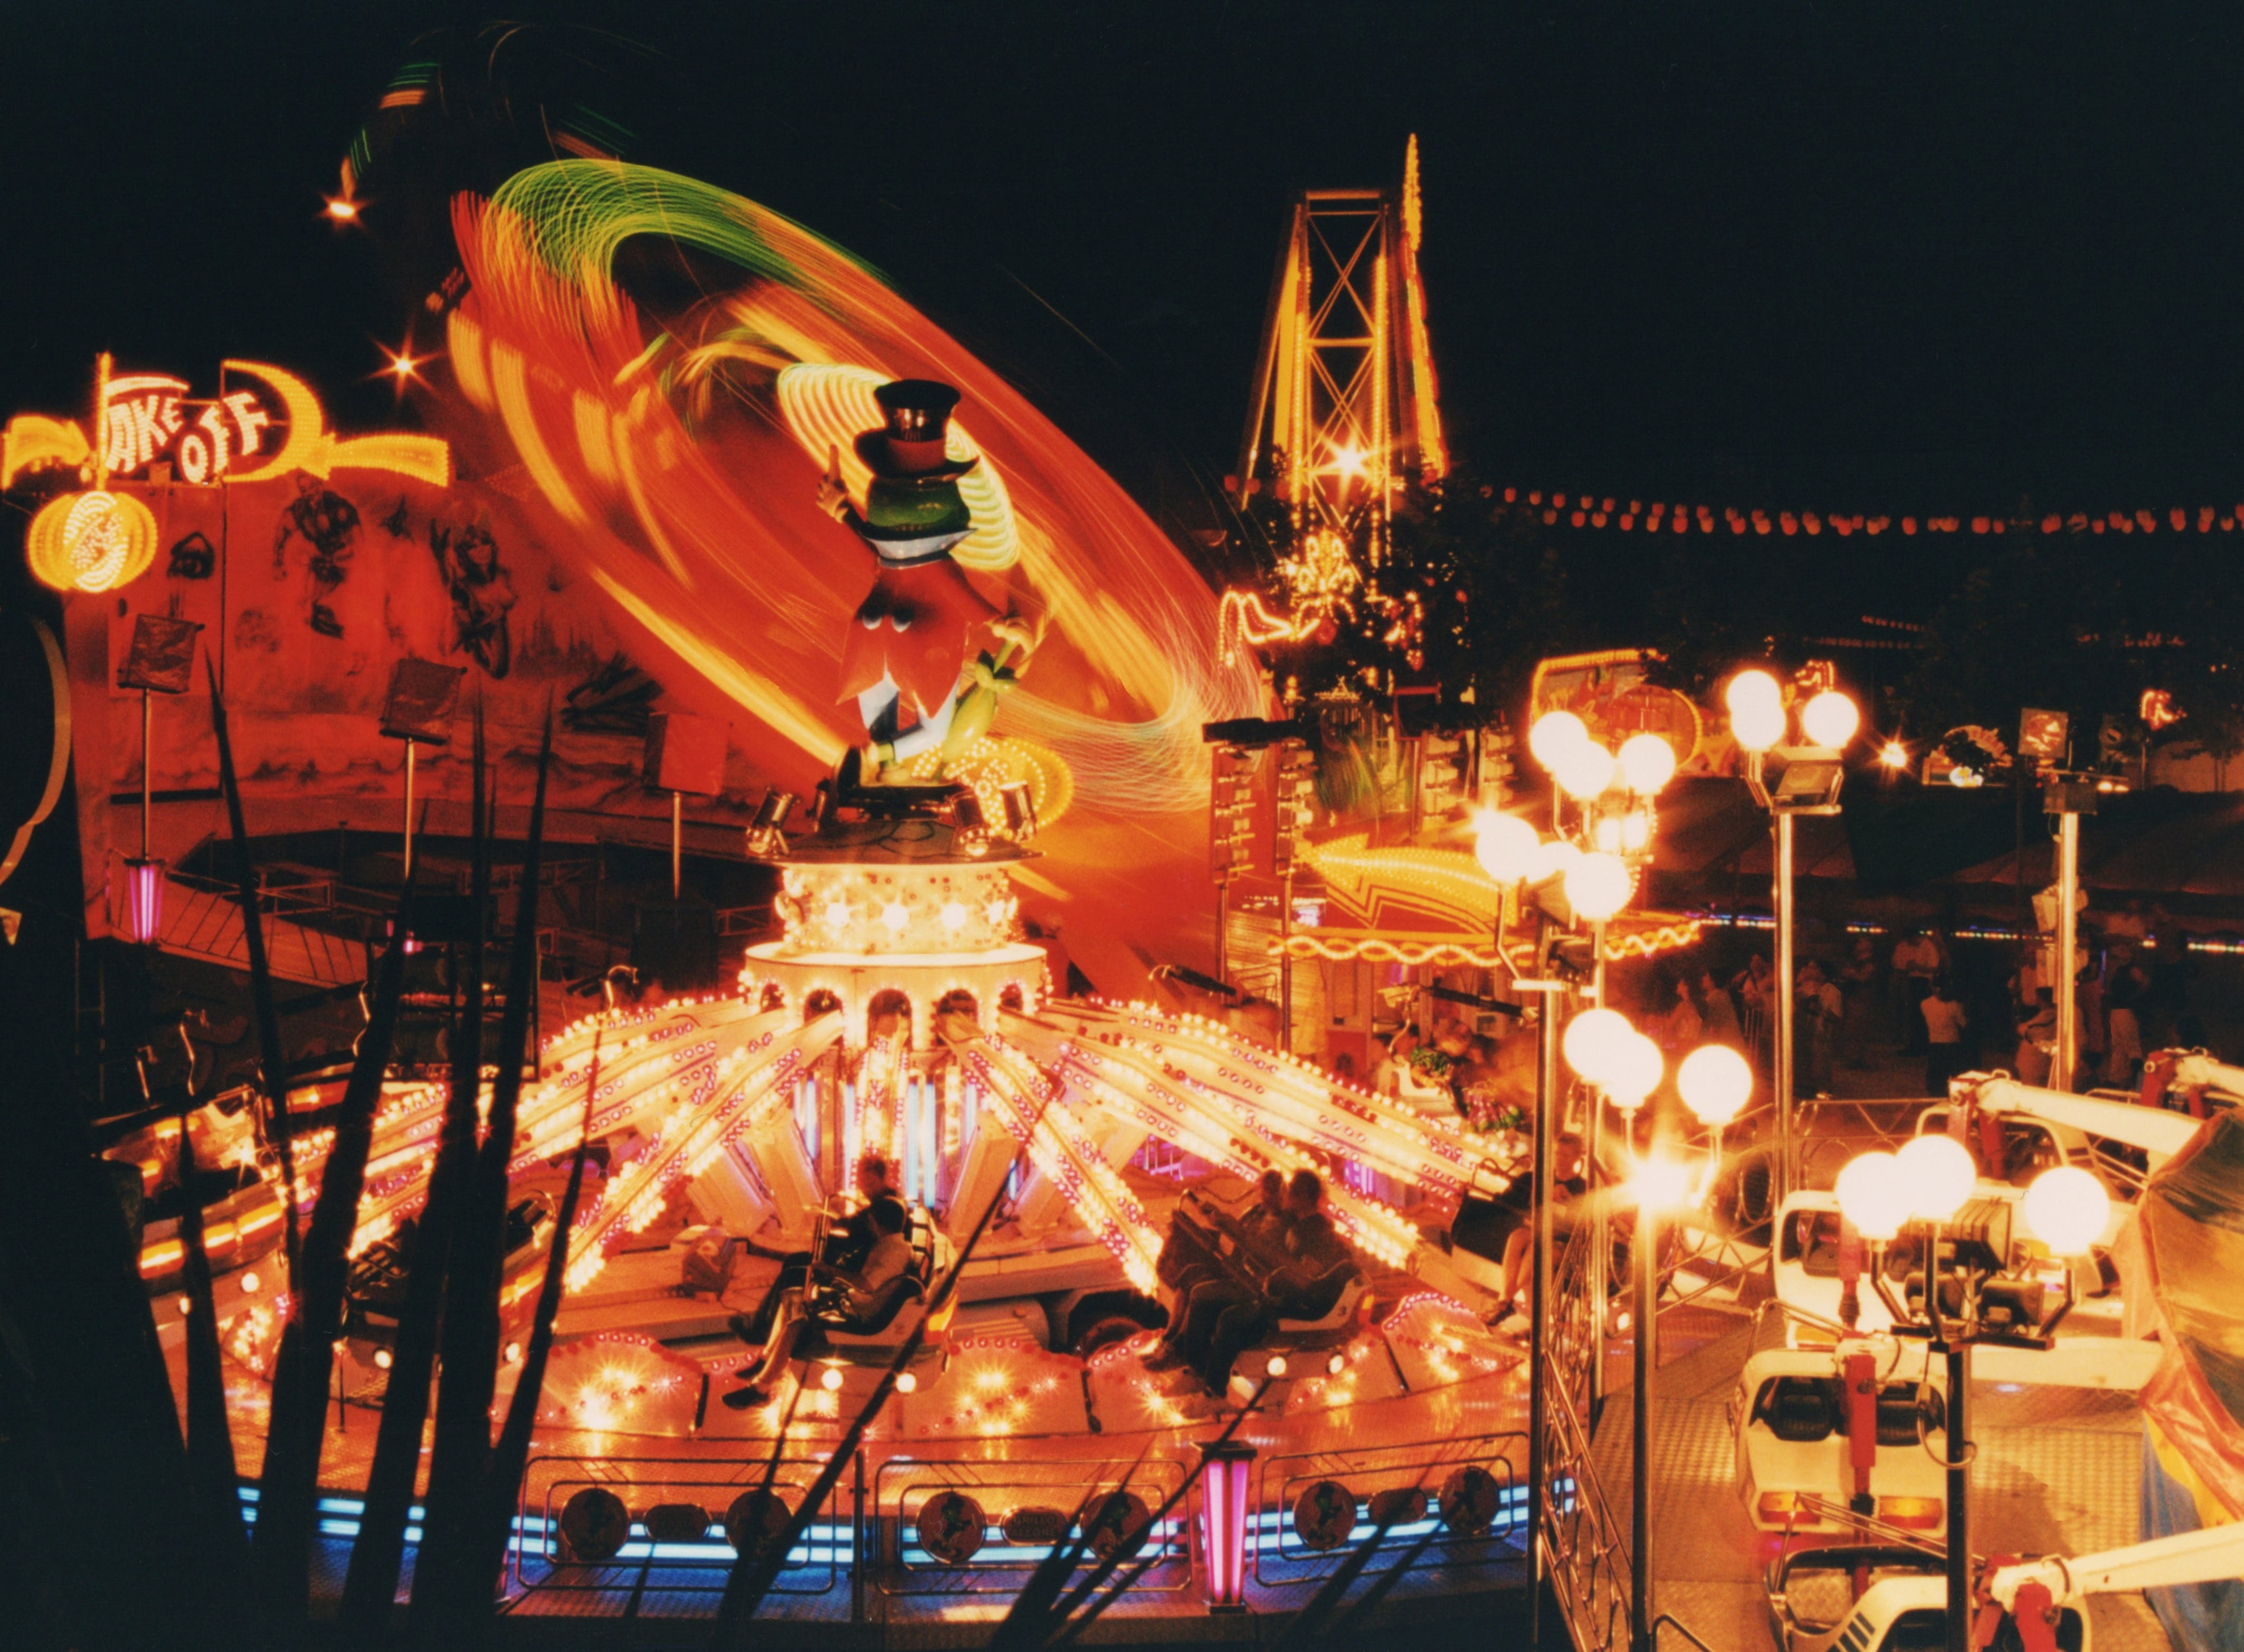 Lit Carnival Lights